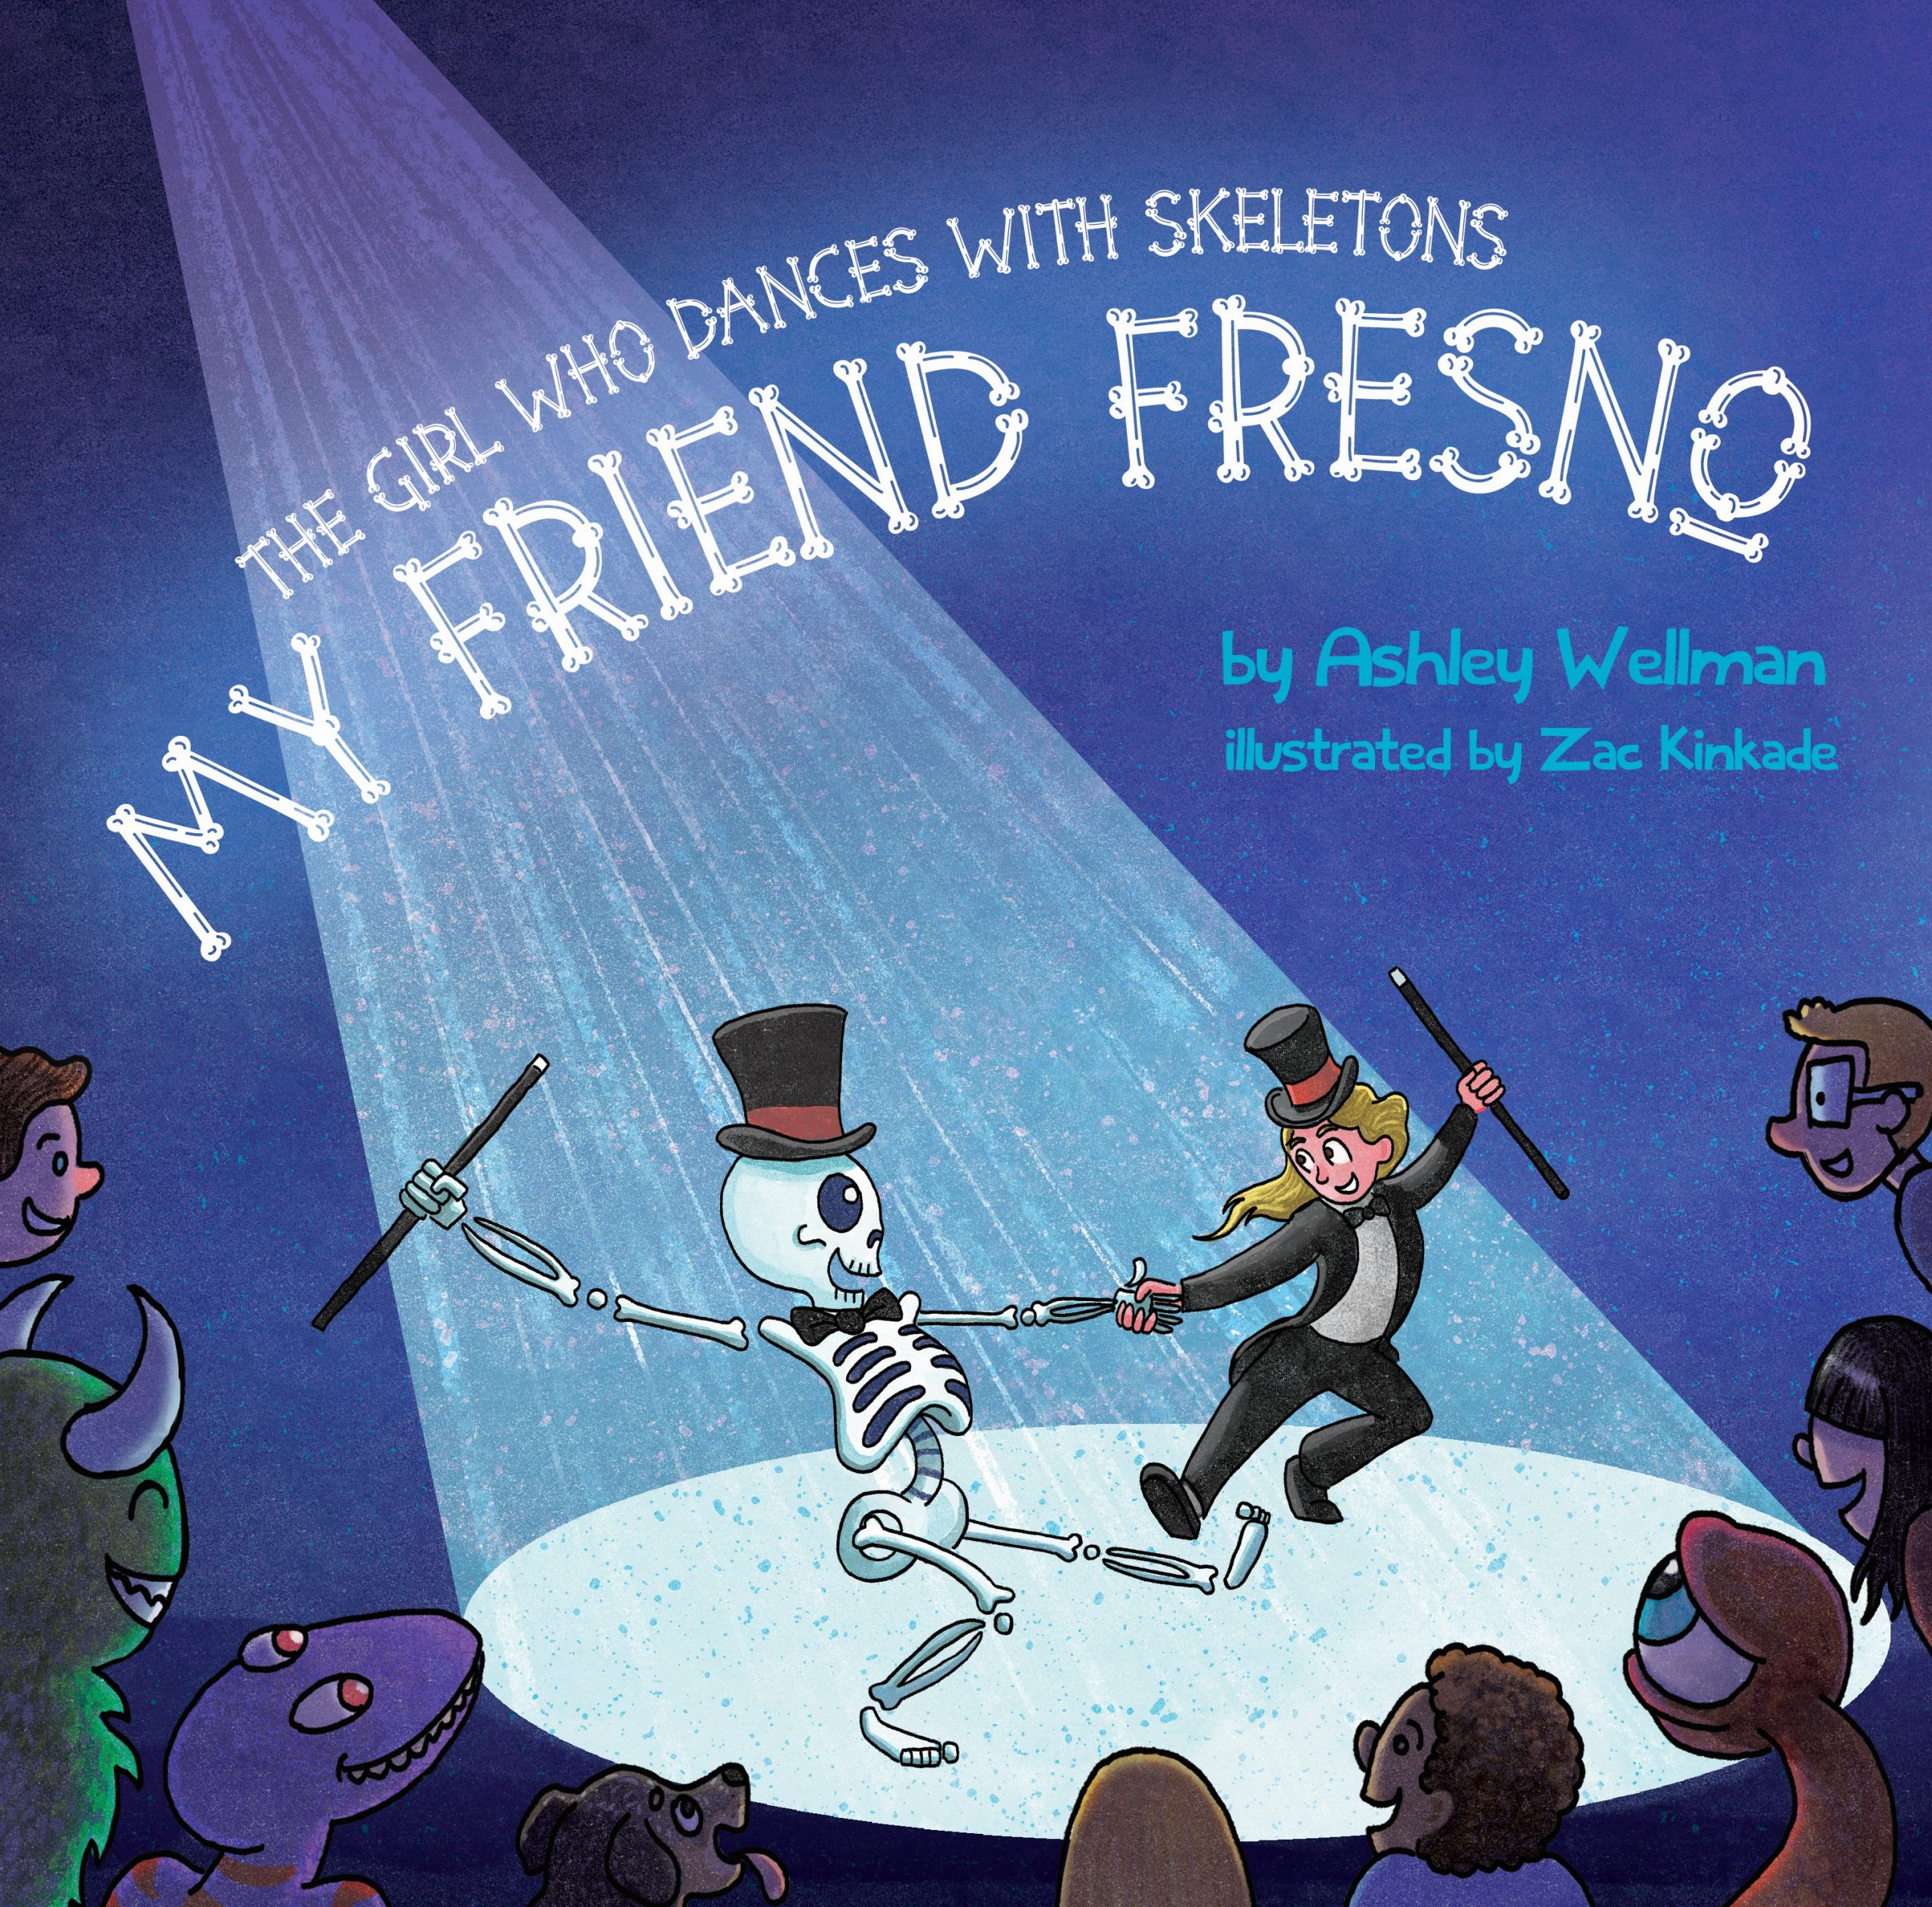 """The Girl who Dances with Skeletons: My Friend Fresno"""